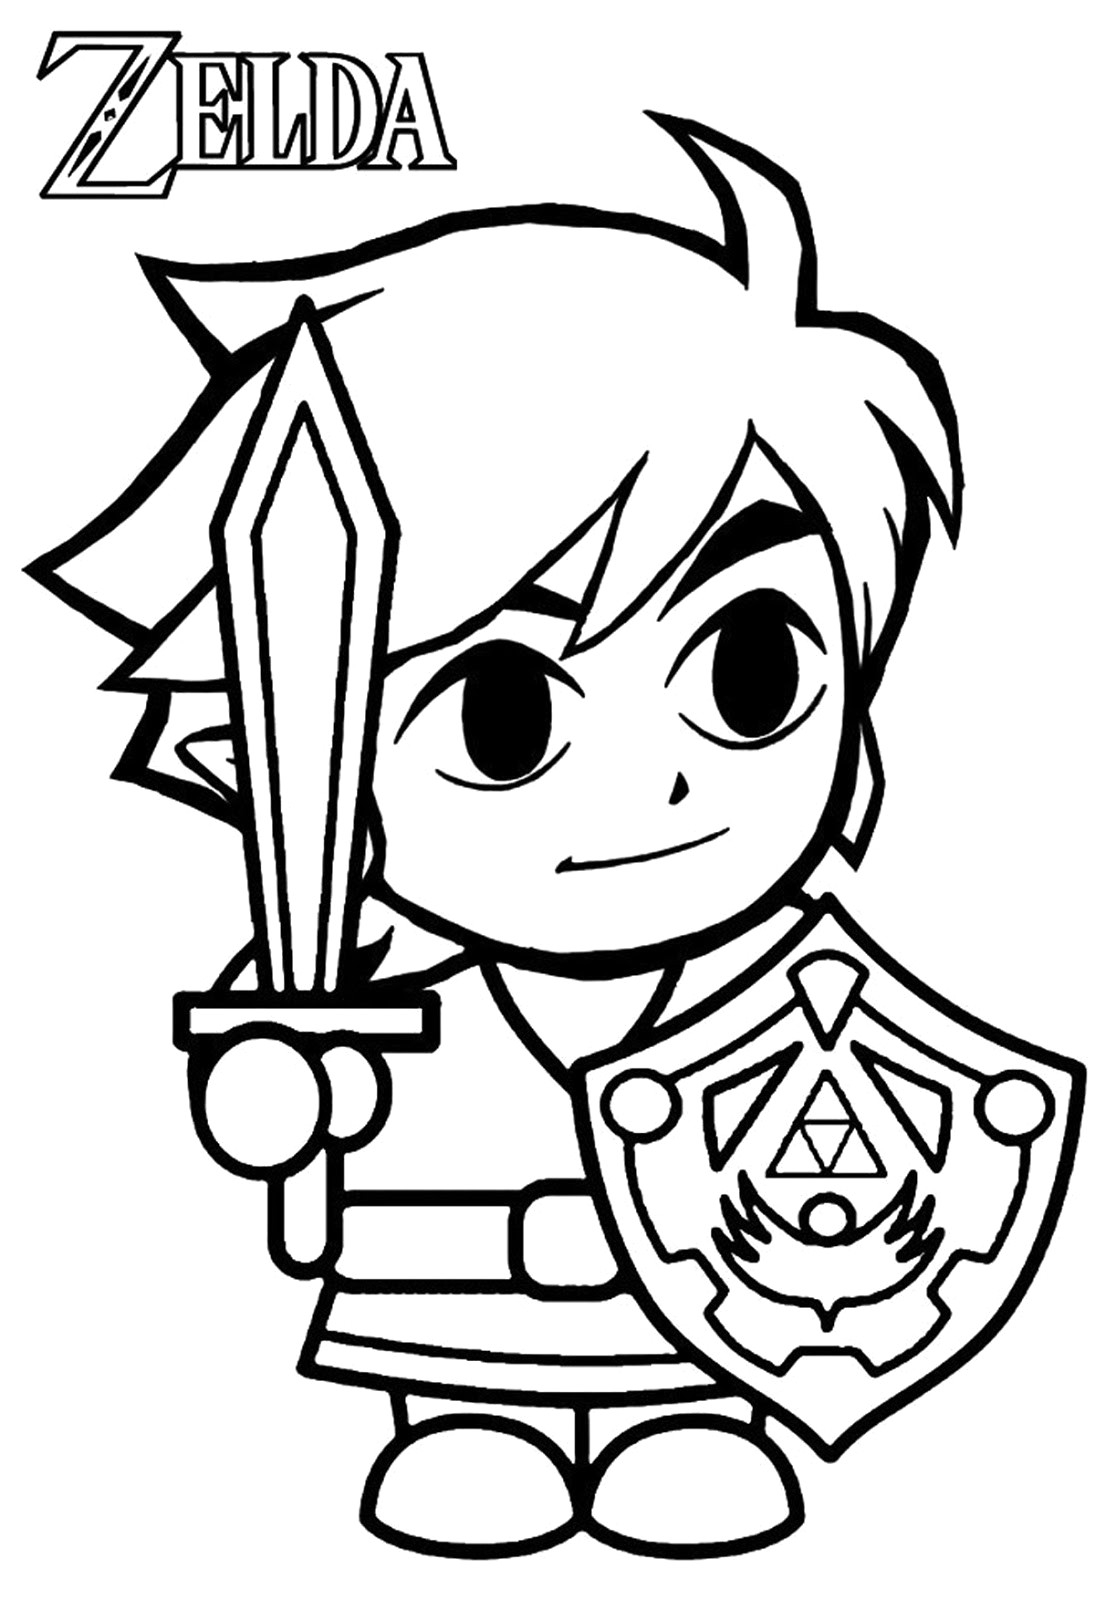 Games Coloring Games